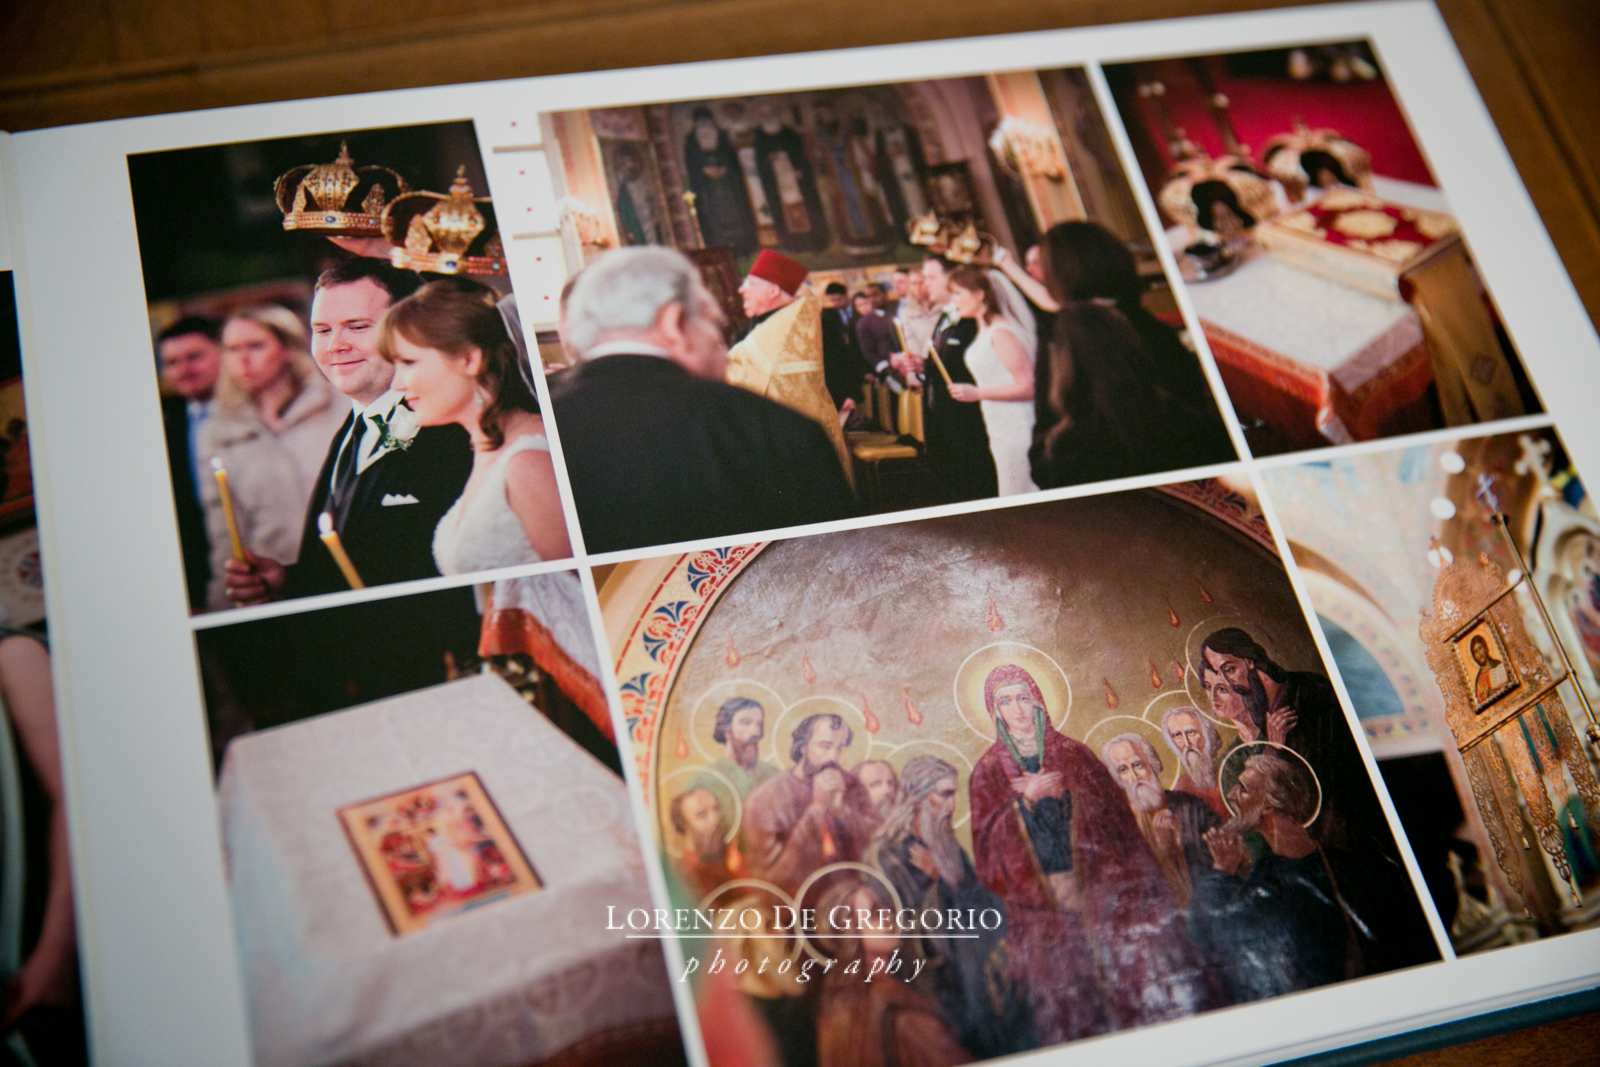 Othodox ceremony. Chicago wedding photographer